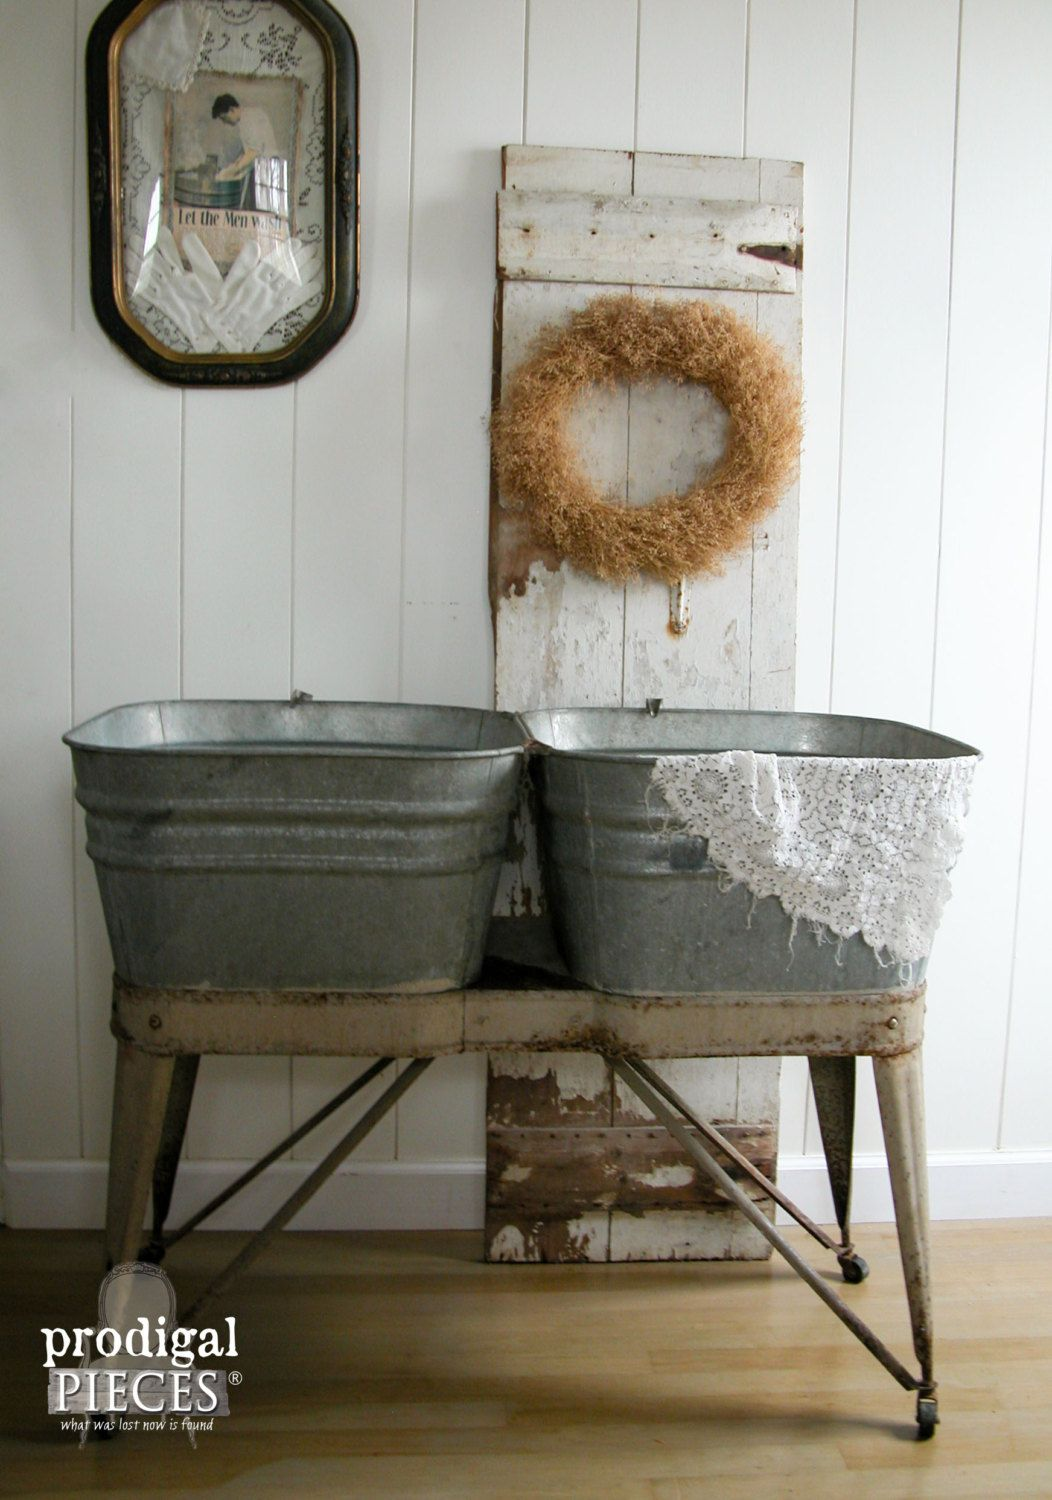 Vintage Mid West Double Galvanized Wash Tub Stand On Casters Rustic Cottage Farmhouse Sinks Galvanized Wash Tub Eclectic Decor Vintage Wash Tubs